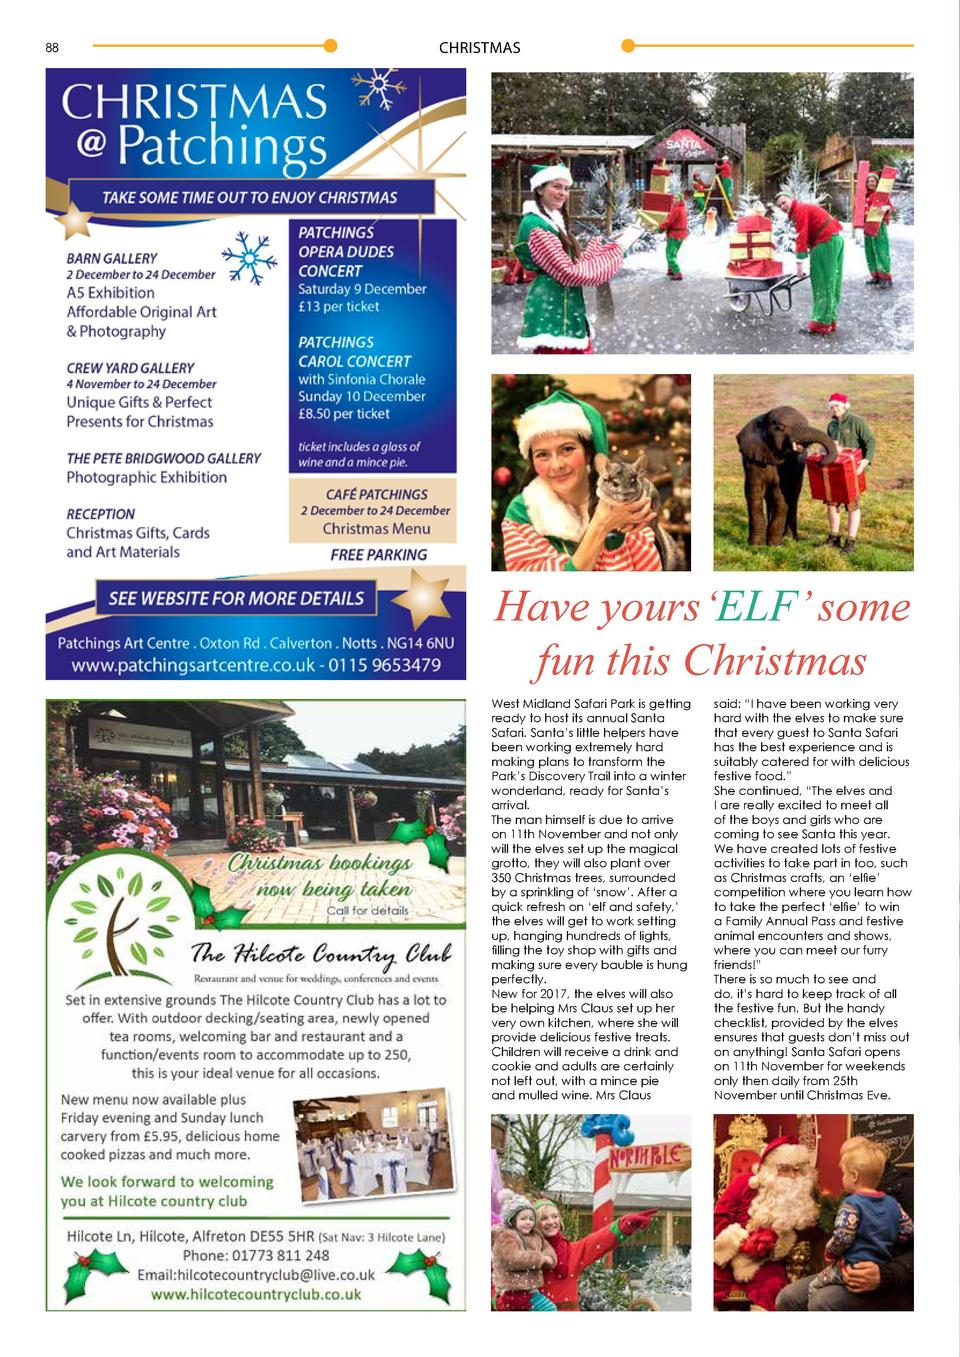 88  Health   Wellbeing  CHRISTMAS  Have yours   ELF    some fun this Christmas West Midland Safari Park is getting ready t...